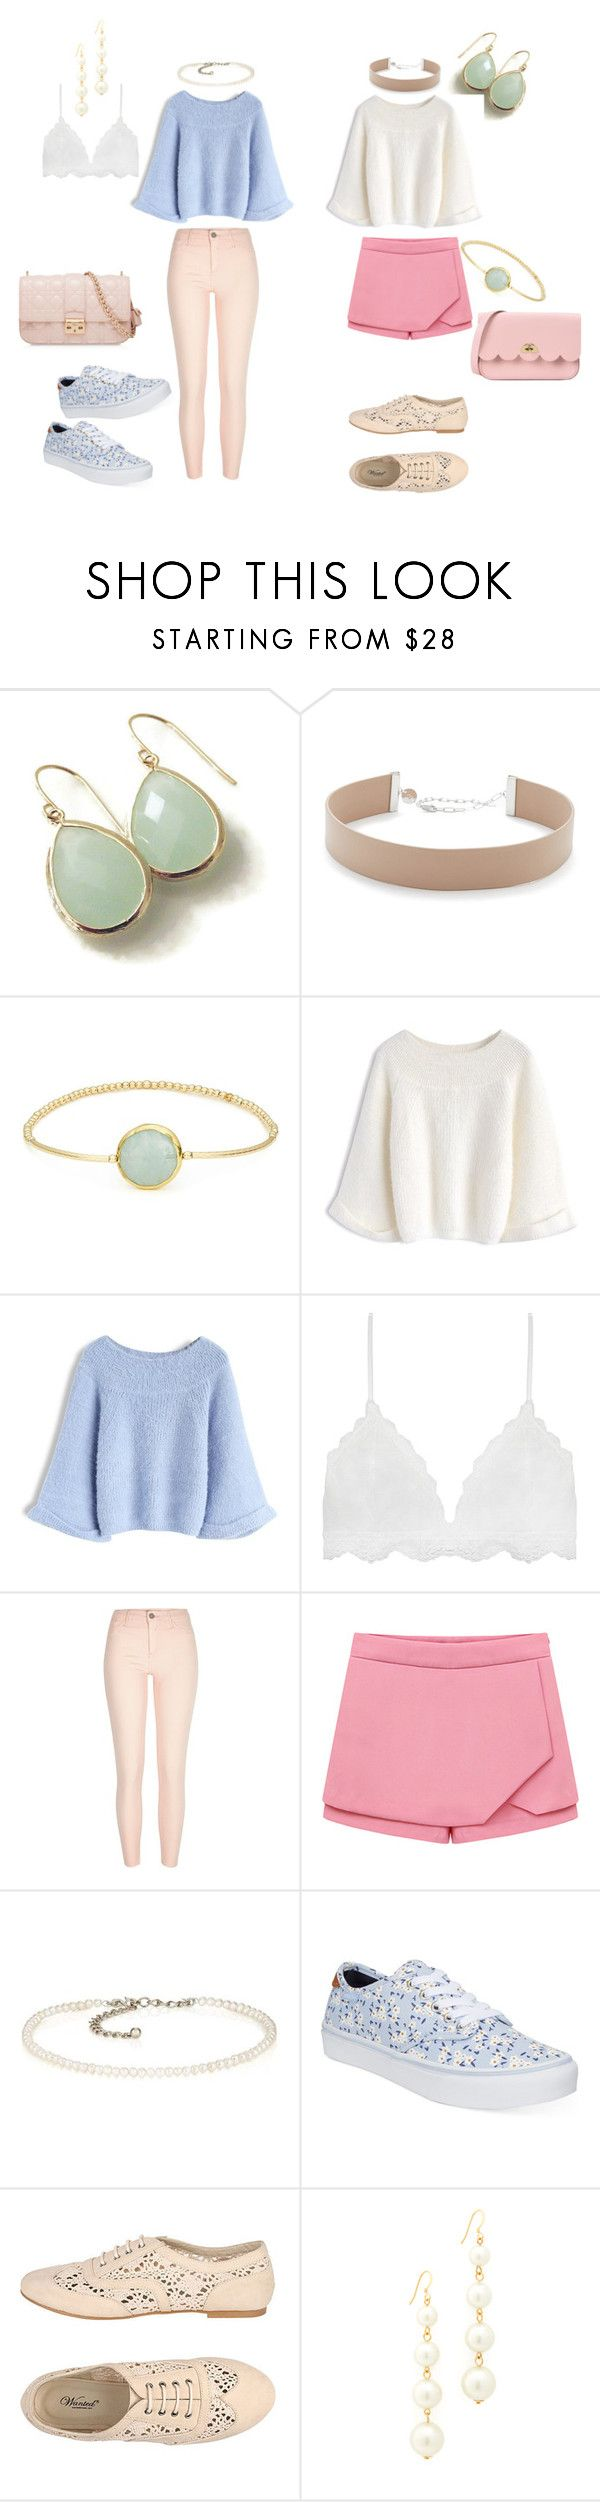 """""""Pretty Pastels 2018 5"""" by anna-mar ❤ liked on Polyvore featuring Jennifer Zeuner, Eva Hanusova, Chicwish, Serendipity, River Island, Kenneth Jay Lane, Vans, Oxford, The Cambridge Satchel Company and Christian Dior"""